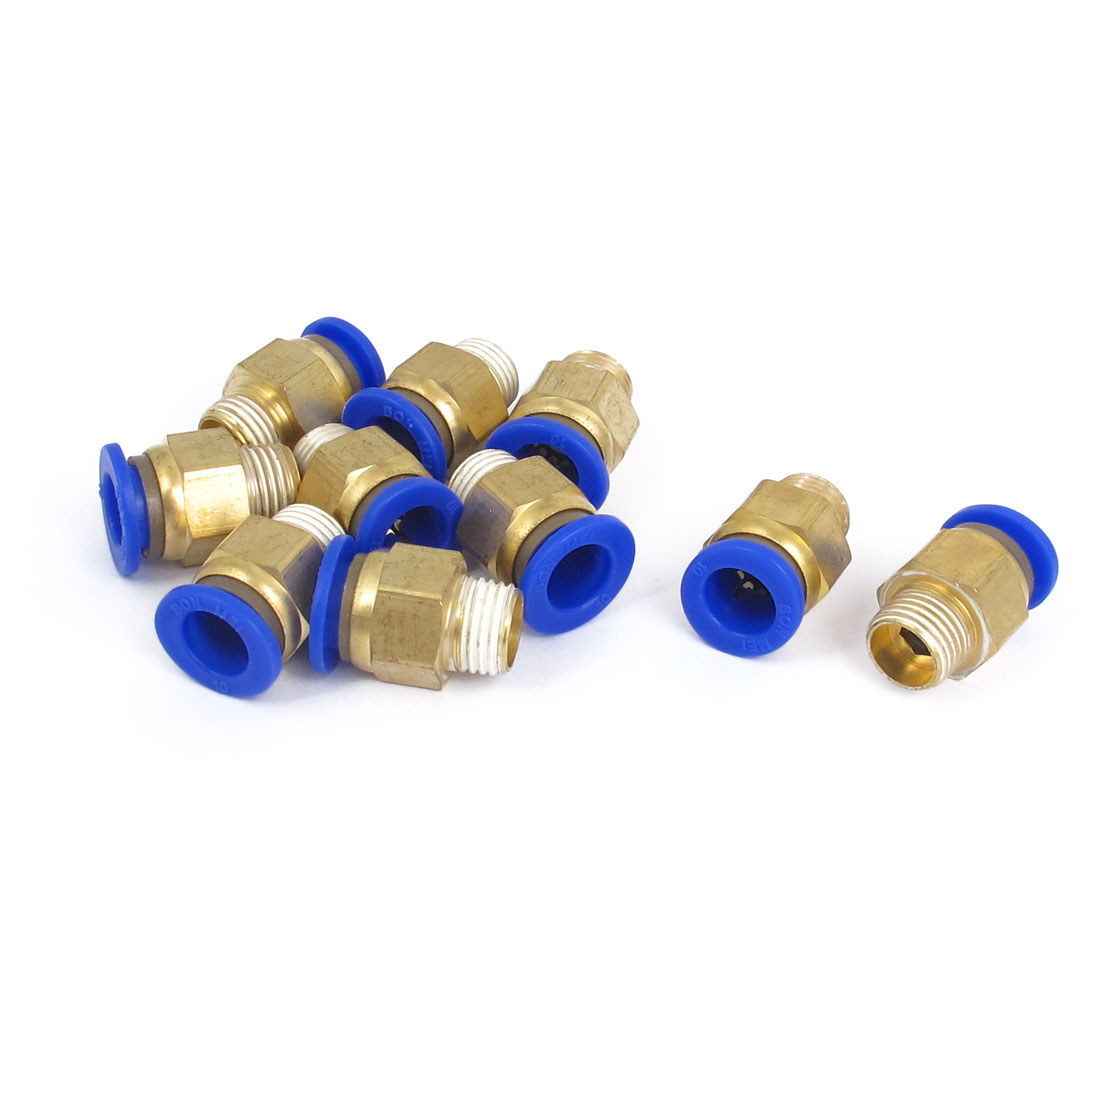 10mm Tube 1/4BSP Male Thread Quick Air Fitting Coupler Connector 10pcs